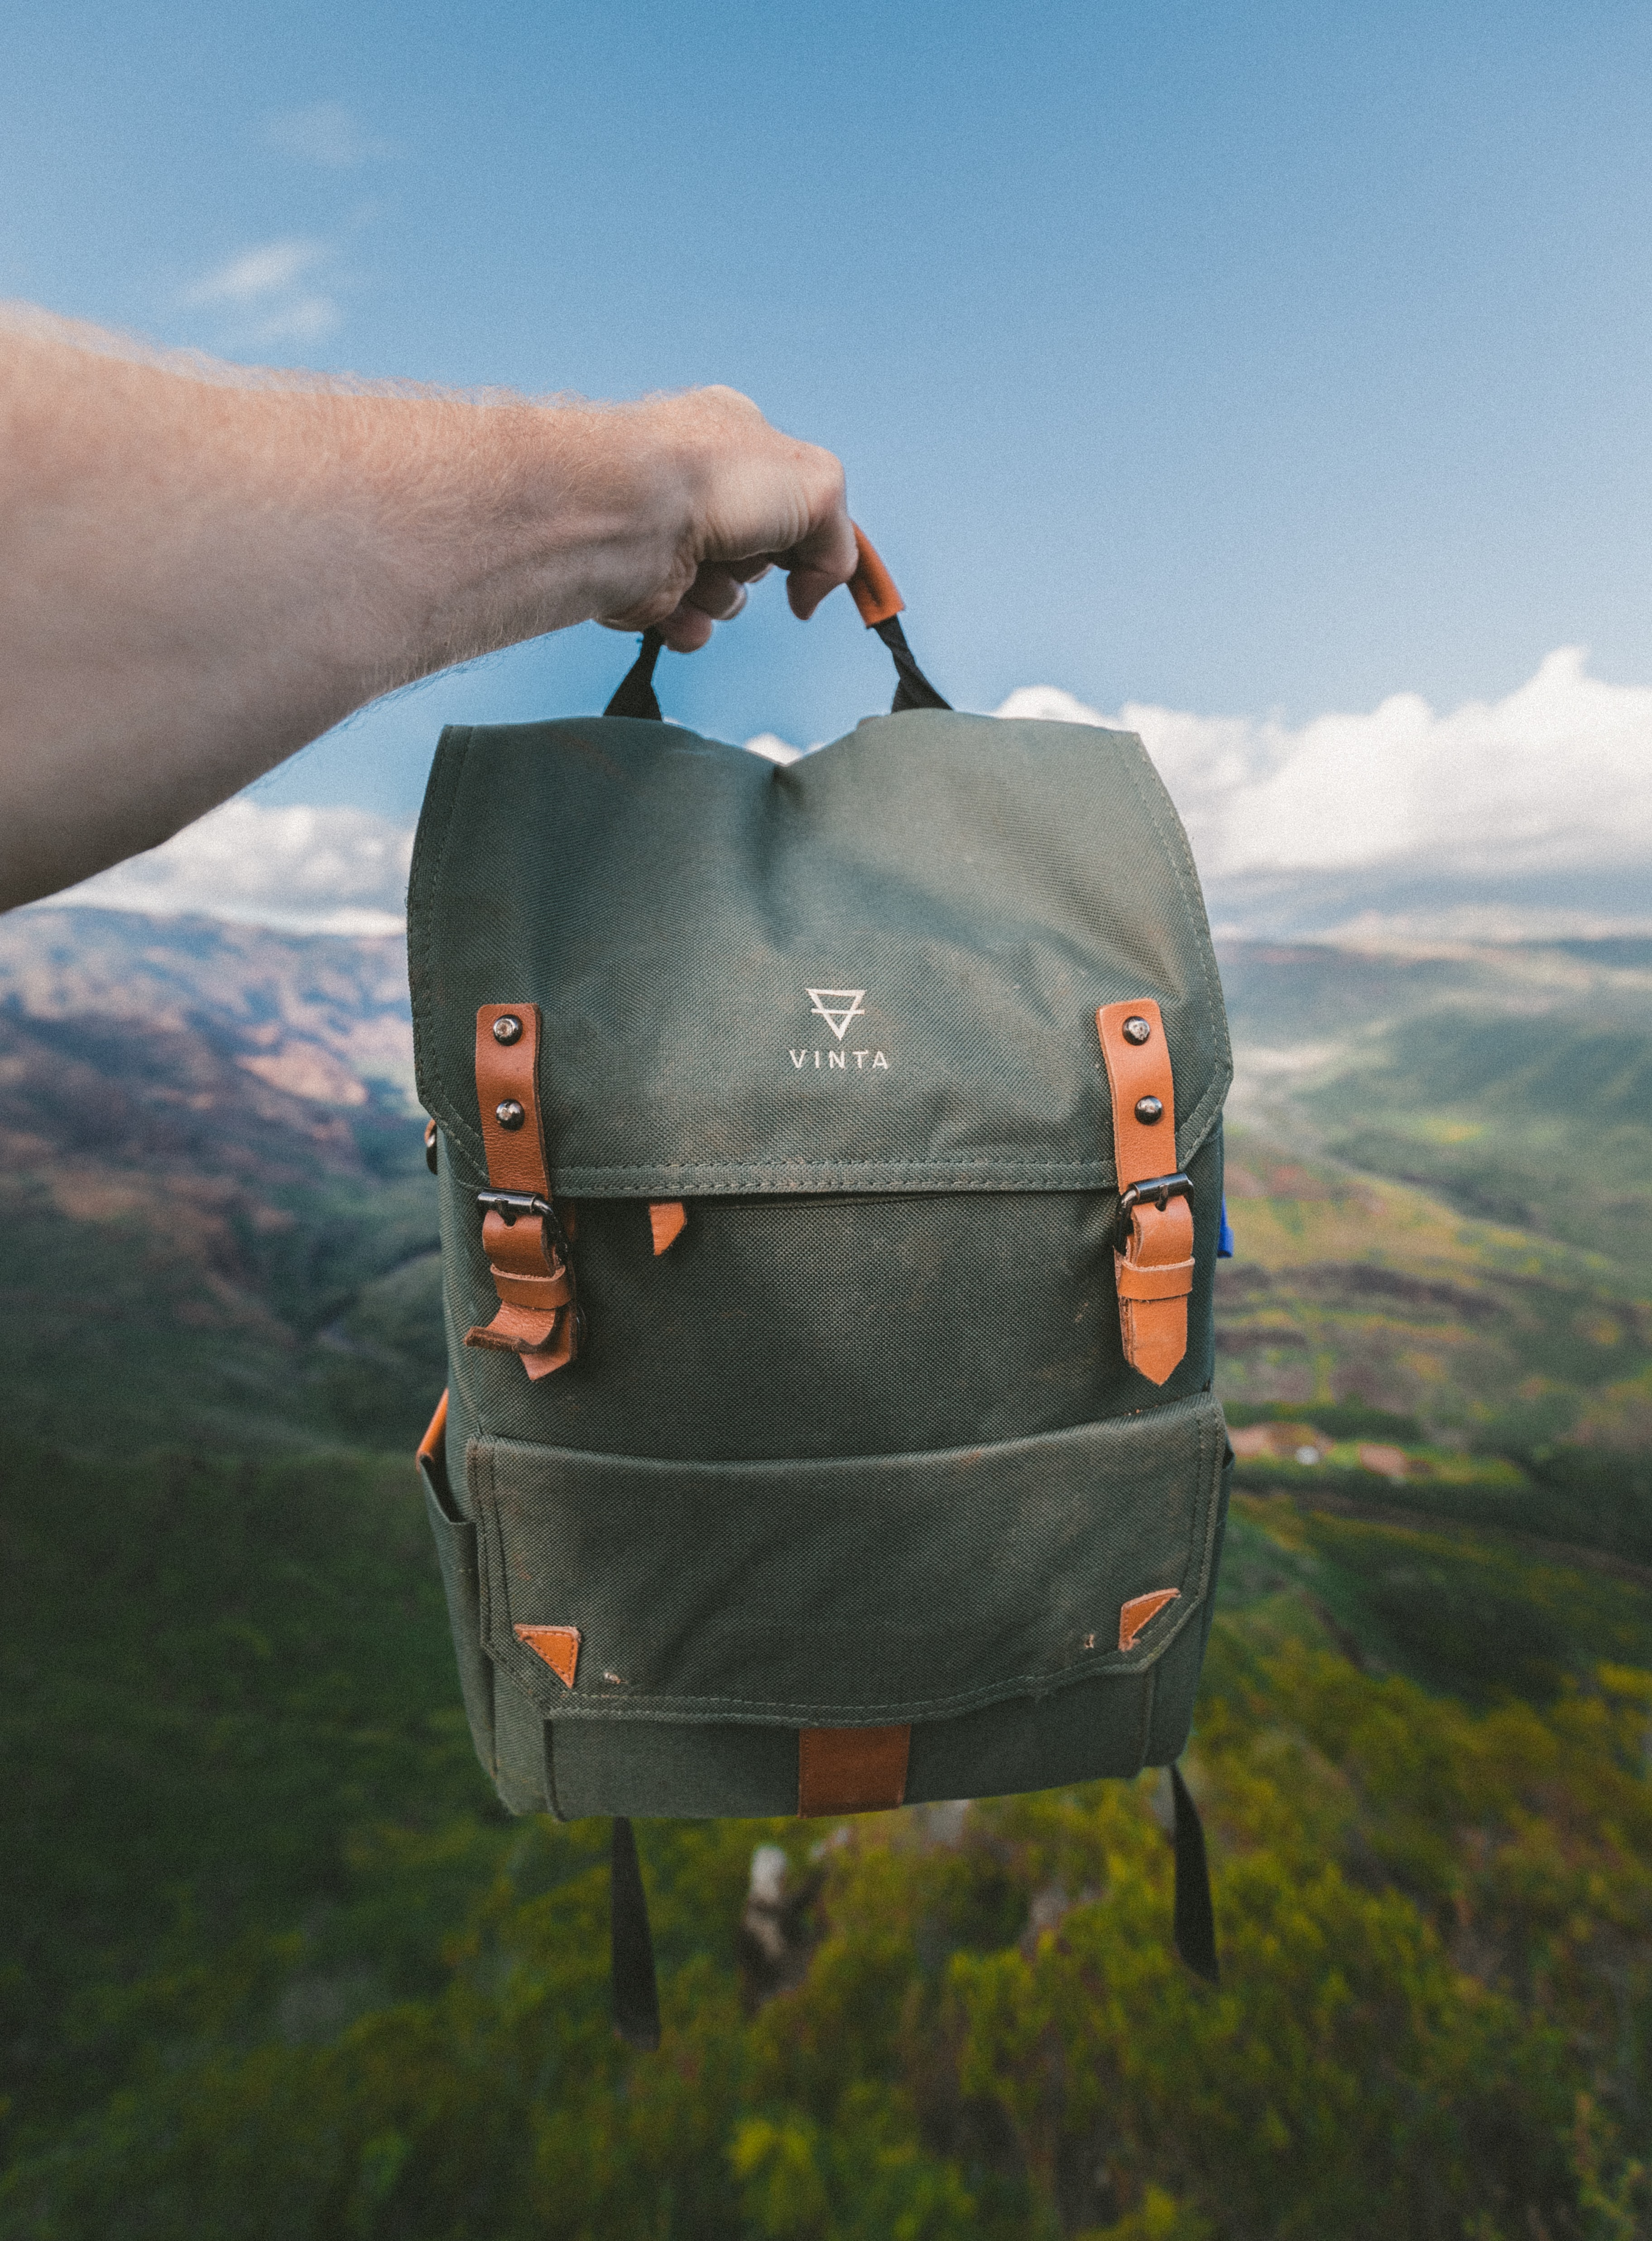 A person holds out a Vinta brand backpack against a mountainous landscape